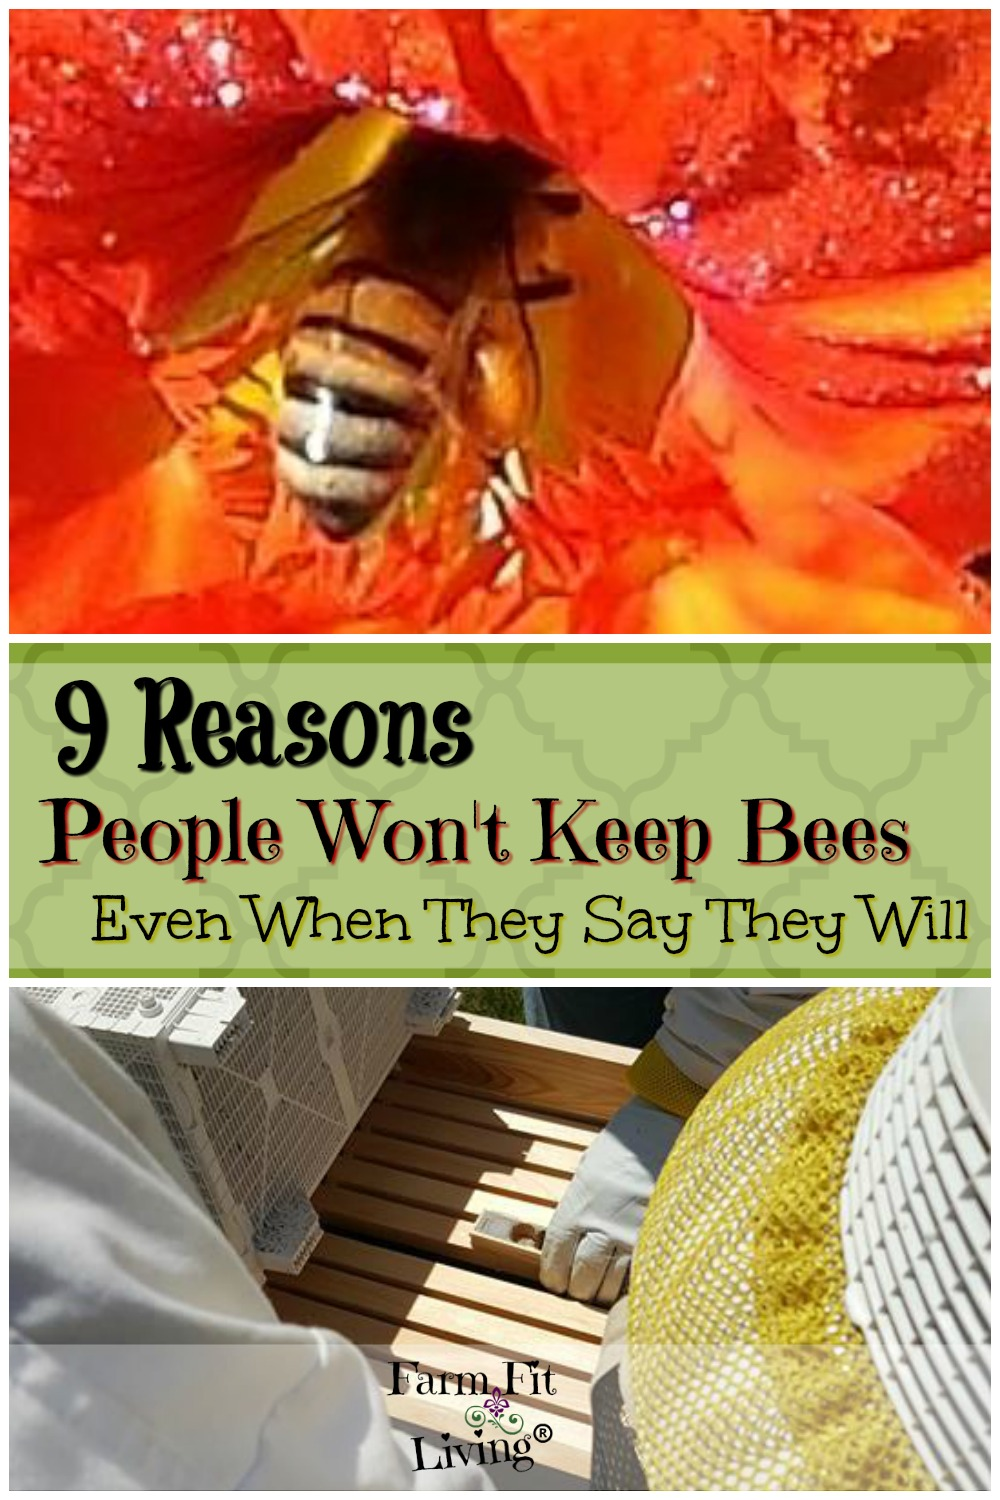 9 Reasons People Won't Keep Bees Even If They Say They Will